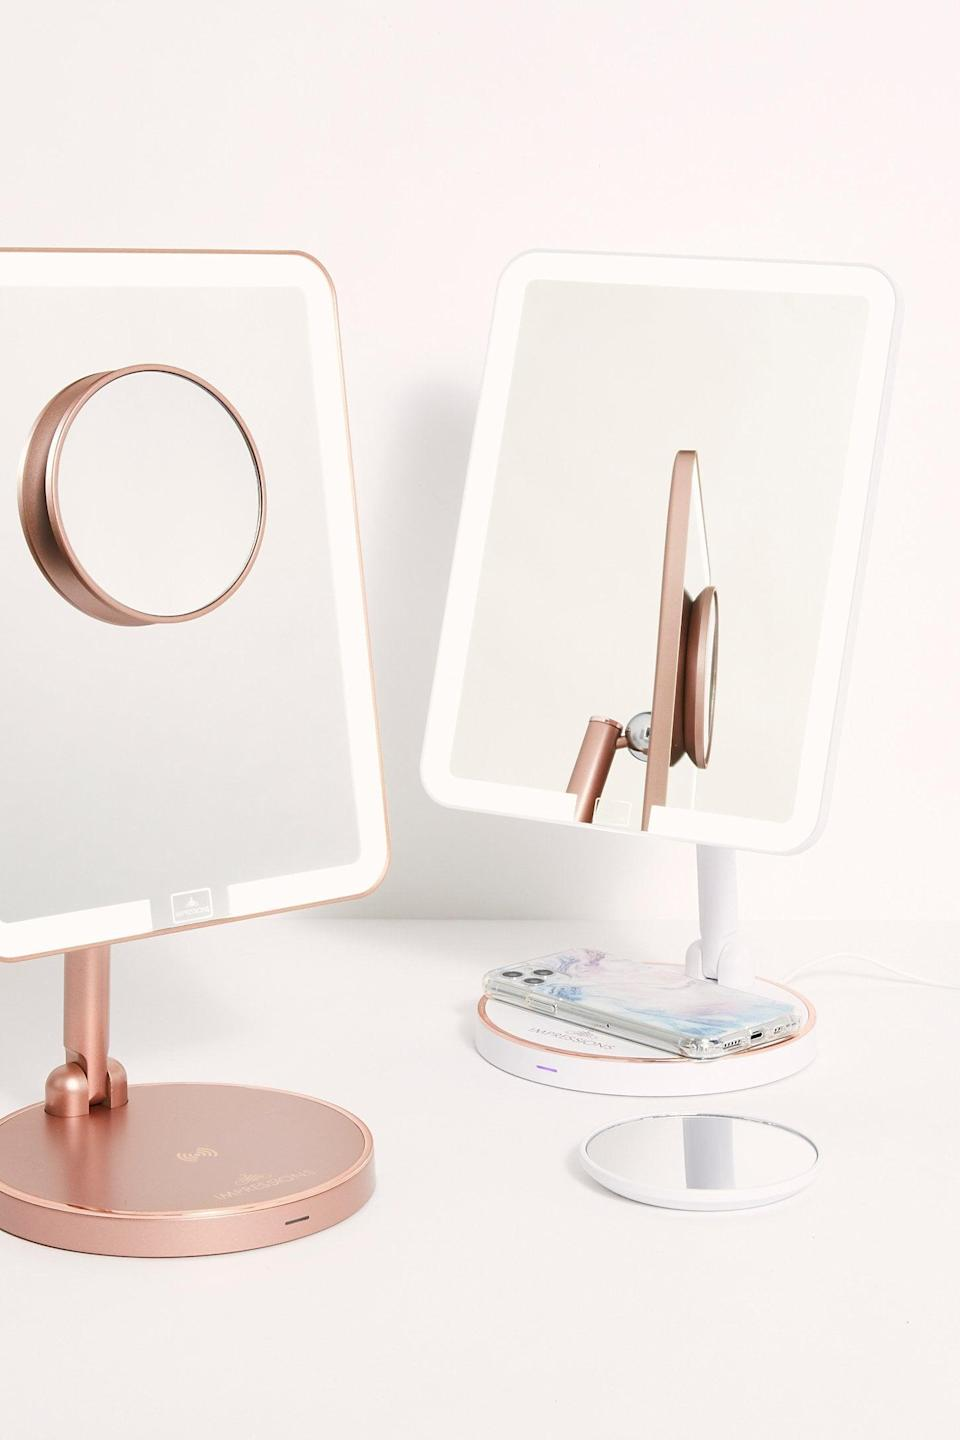 """<p>A beauty-lover will enjoy this <a href=""""https://www.popsugar.com/buy/Royale-Makeup-Mirror-amp-Wireless-Charger-527145?p_name=Royale%20Makeup%20Mirror%20%26amp%3B%20Wireless%20Charger&retailer=freepeople.com&pid=527145&price=99&evar1=fab%3Aus&evar9=45460327&evar98=https%3A%2F%2Fwww.popsugar.com%2Ffashion%2Fphoto-gallery%2F45460327%2Fimage%2F46977995%2FRoyale-Makeup-Mirror-Wireless-Charger&list1=shopping%2Cgifts%2Cfree%20people%2Choliday%2Cgift%20guide%2Cgifts%20for%20women&prop13=api&pdata=1"""" class=""""link rapid-noclick-resp"""" rel=""""nofollow noopener"""" target=""""_blank"""" data-ylk=""""slk:Royale Makeup Mirror & Wireless Charger"""">Royale Makeup Mirror & Wireless Charger</a> ($99).</p>"""